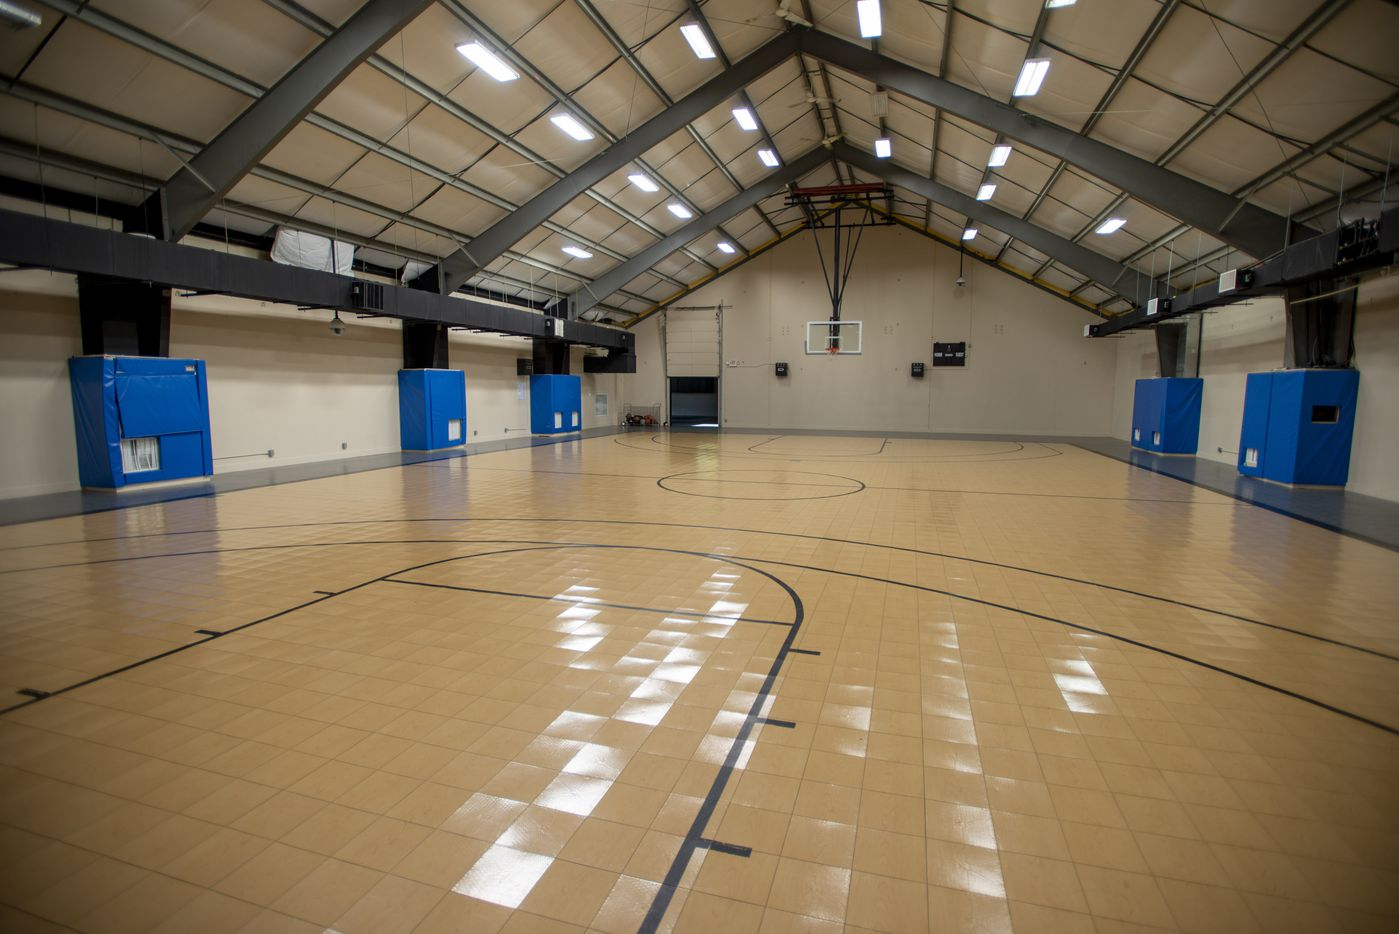 Interior of gymnasium at 5101 Kensington Ct., in Flower Mound, Texas on August 19, 2020. (Robert W. Hart/Special Contributor)